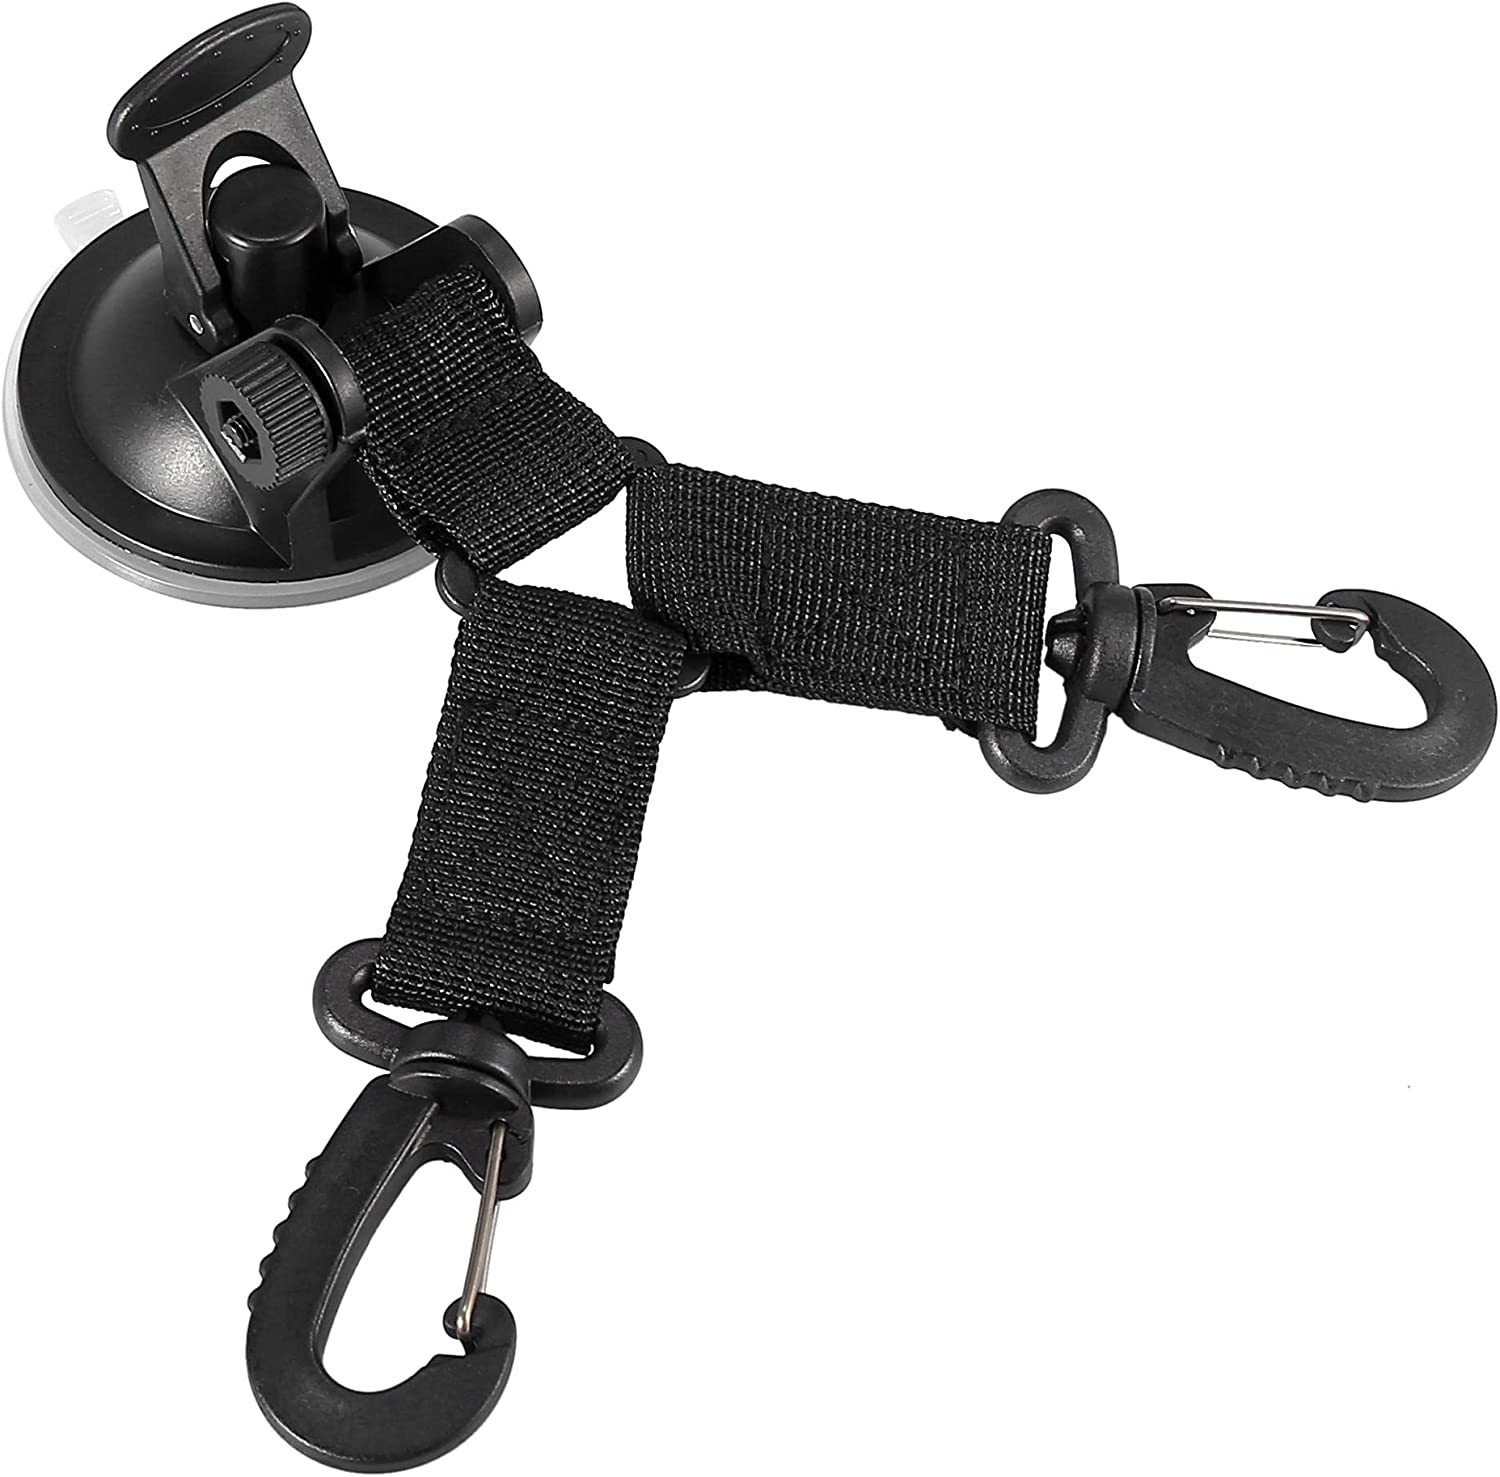 X AUTOHAUX Suction Cup Anchor with Down 5% OFF 2 Securing Over item handling Hook Tie Camp